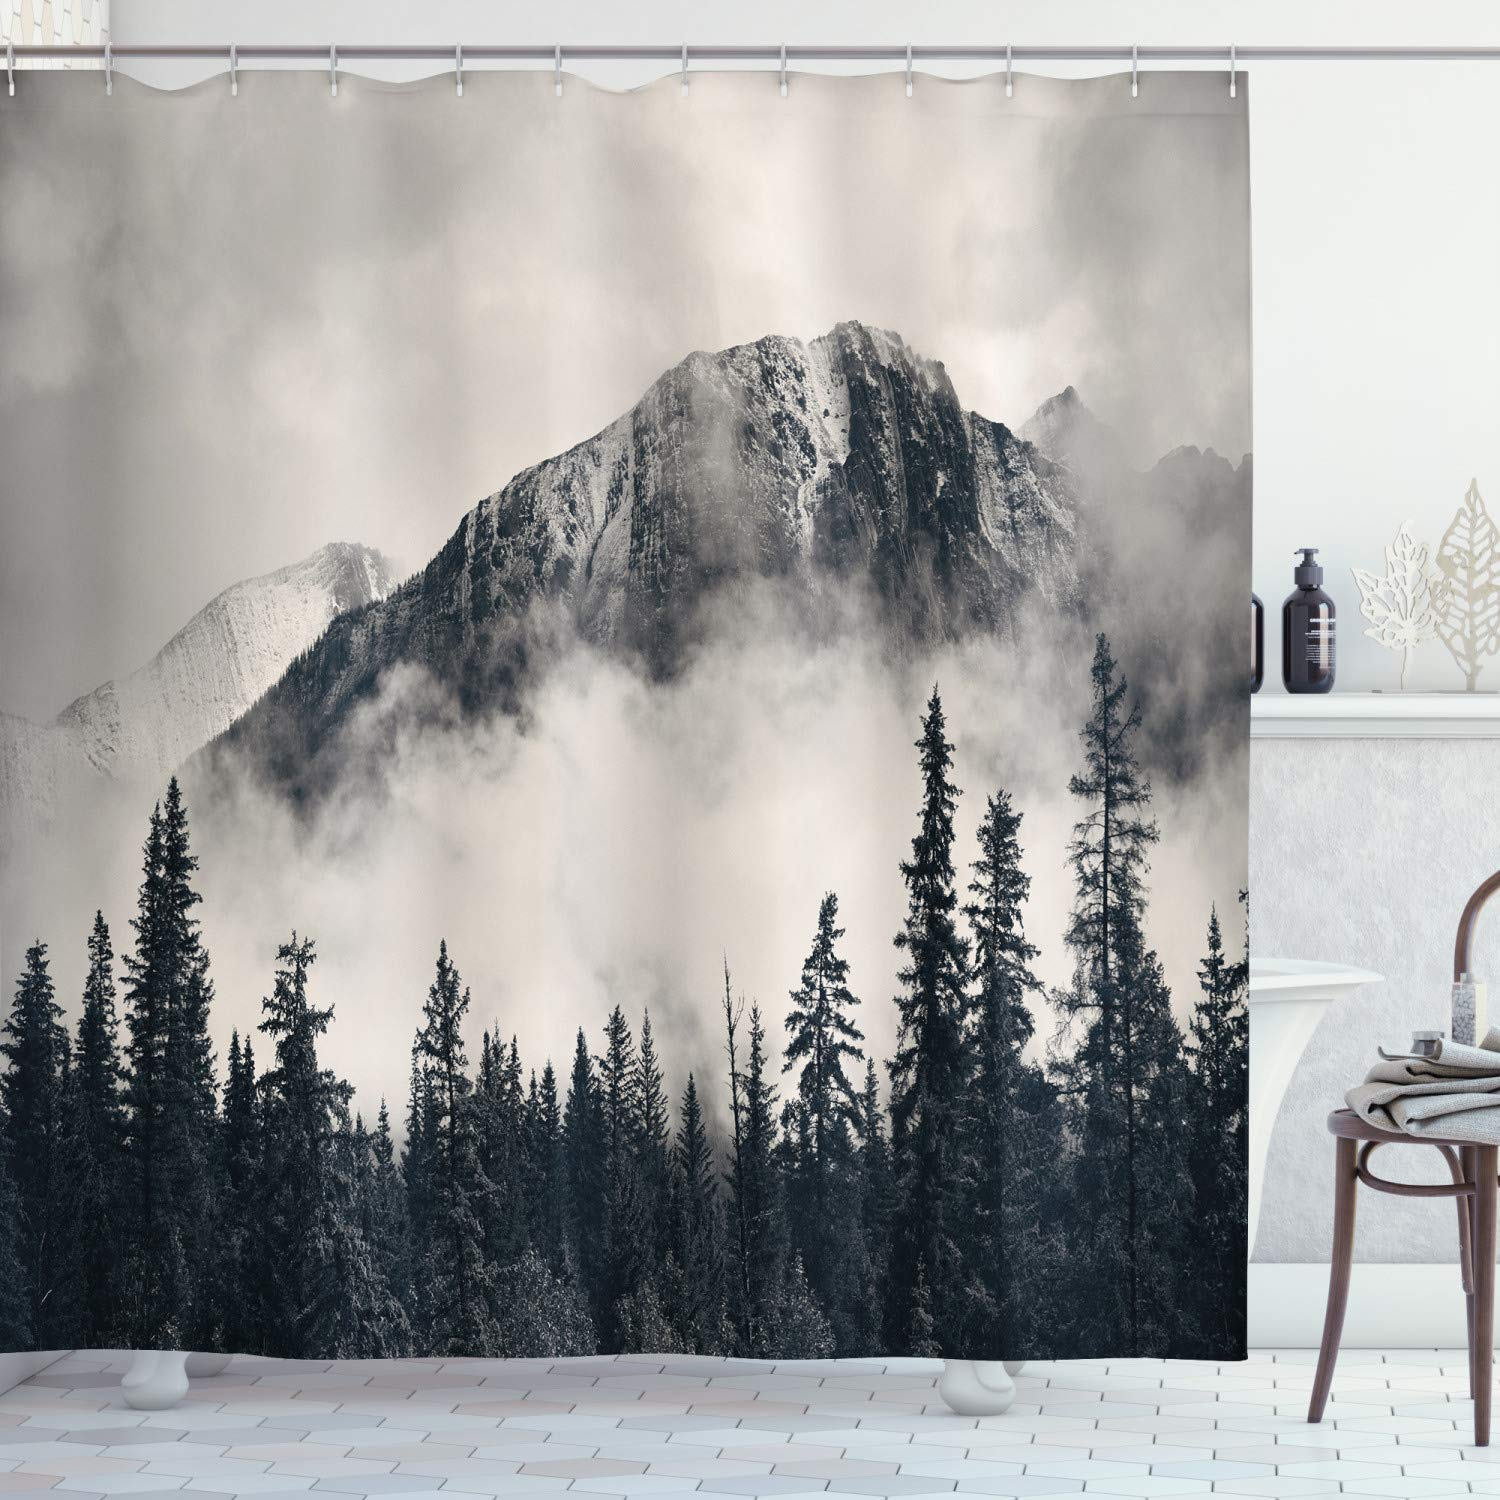 Ambesonne National Parks Home Decor Shower Curtain by, Canadian Smokey Mountain Cliff Outdoor Idyllic Photo Art, Fabric Bathroom Decor Set with Hooks, 84 Inches Extra Long, Black and White